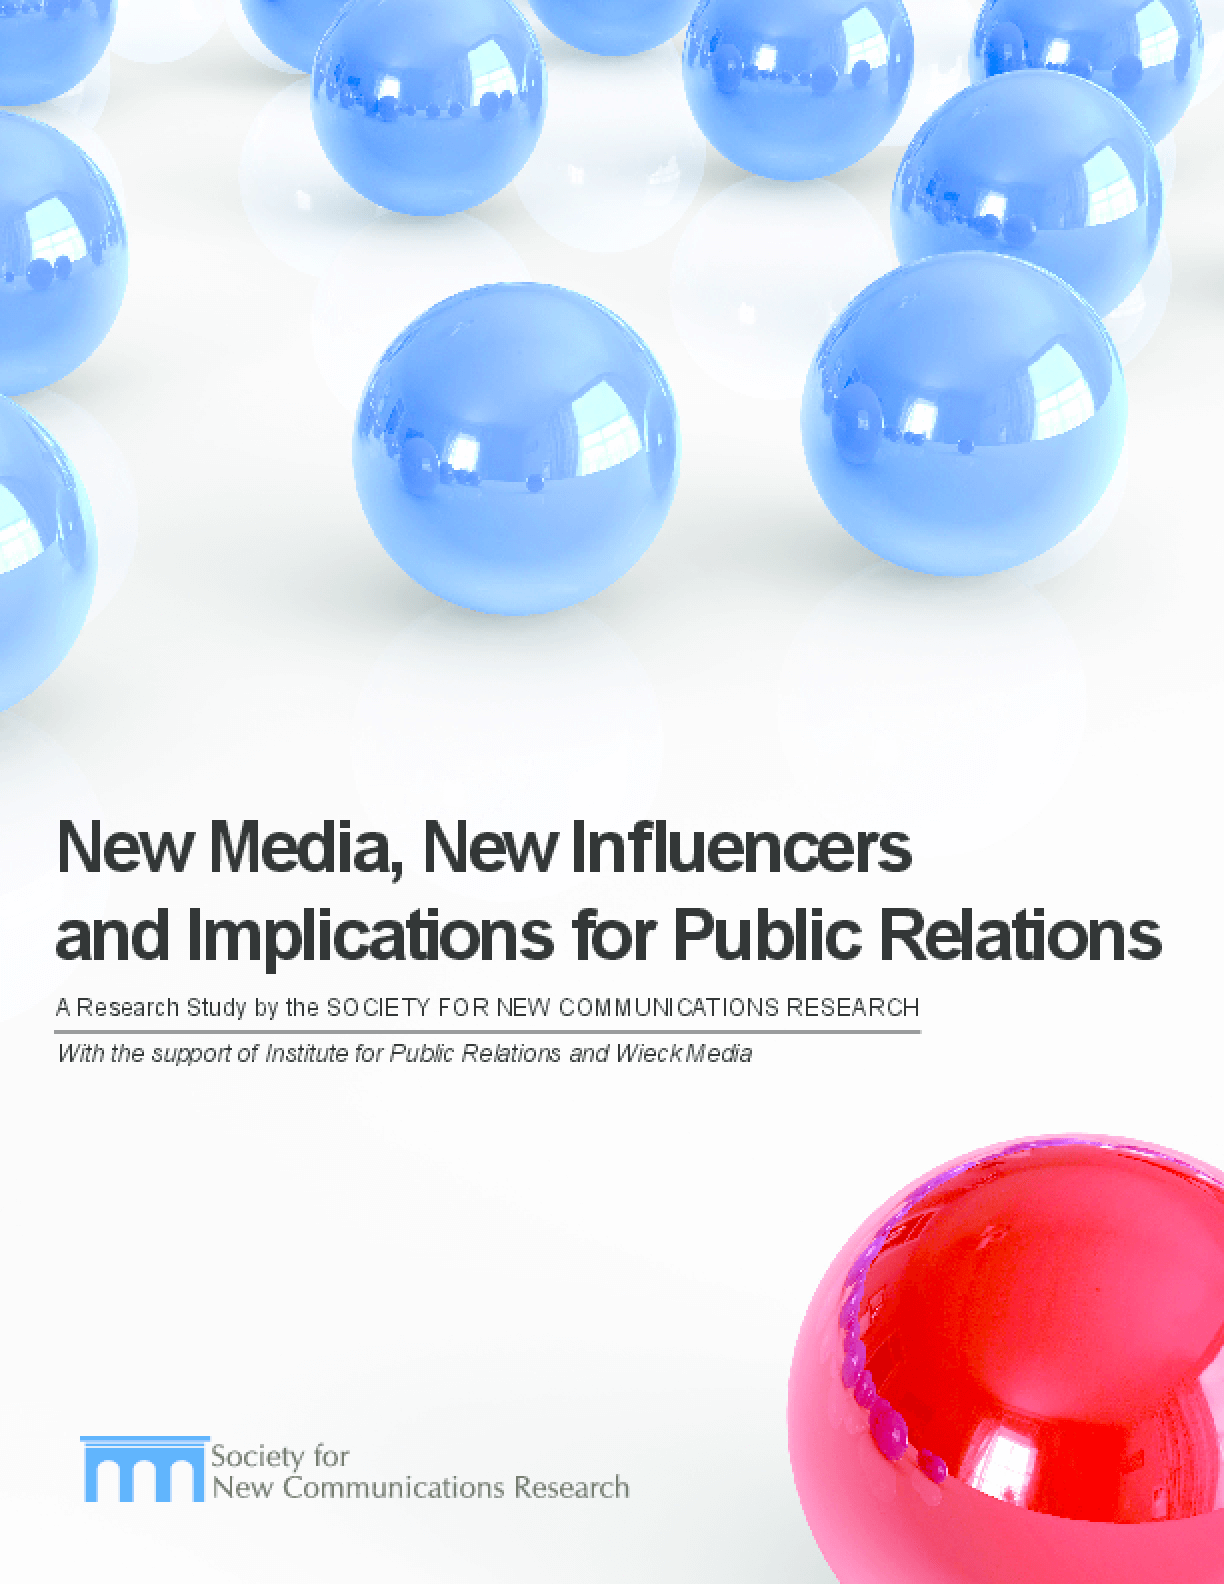 New Media, New Influencers and Implications for Public Relations